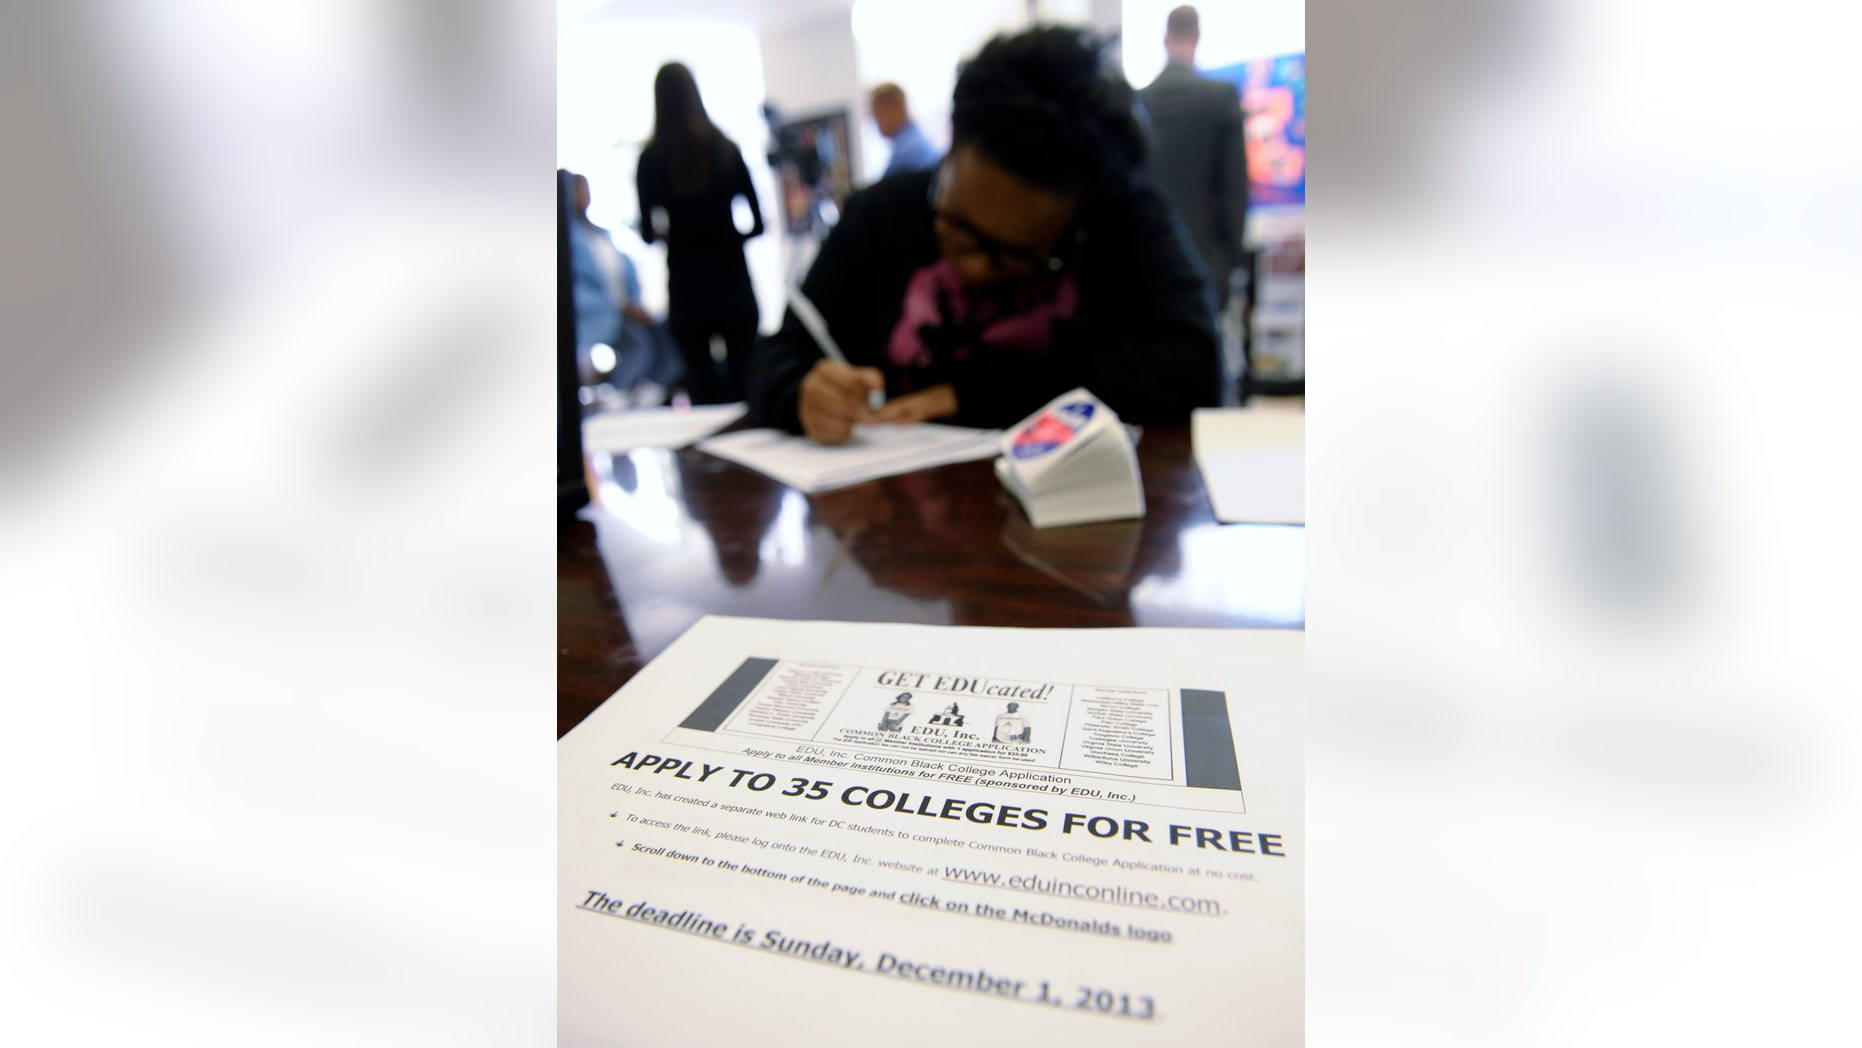 """Scheryl Duarte, a senior at Roosevelt High School, fills out a college enrollment application at her school in Washington, Nov. 14, 2013. The schools was hosting a """"sit-in"""" to get high school students who might not otherwise go to college to apply to college. President Barack Obama's goal is that by 2020, America will again have the highest proportion of college graduates in the world. More low-income and first-generation students must get a degree to reach it. The first hurdle is getting these students to apply. (AP Photo/Susan Walsh)"""